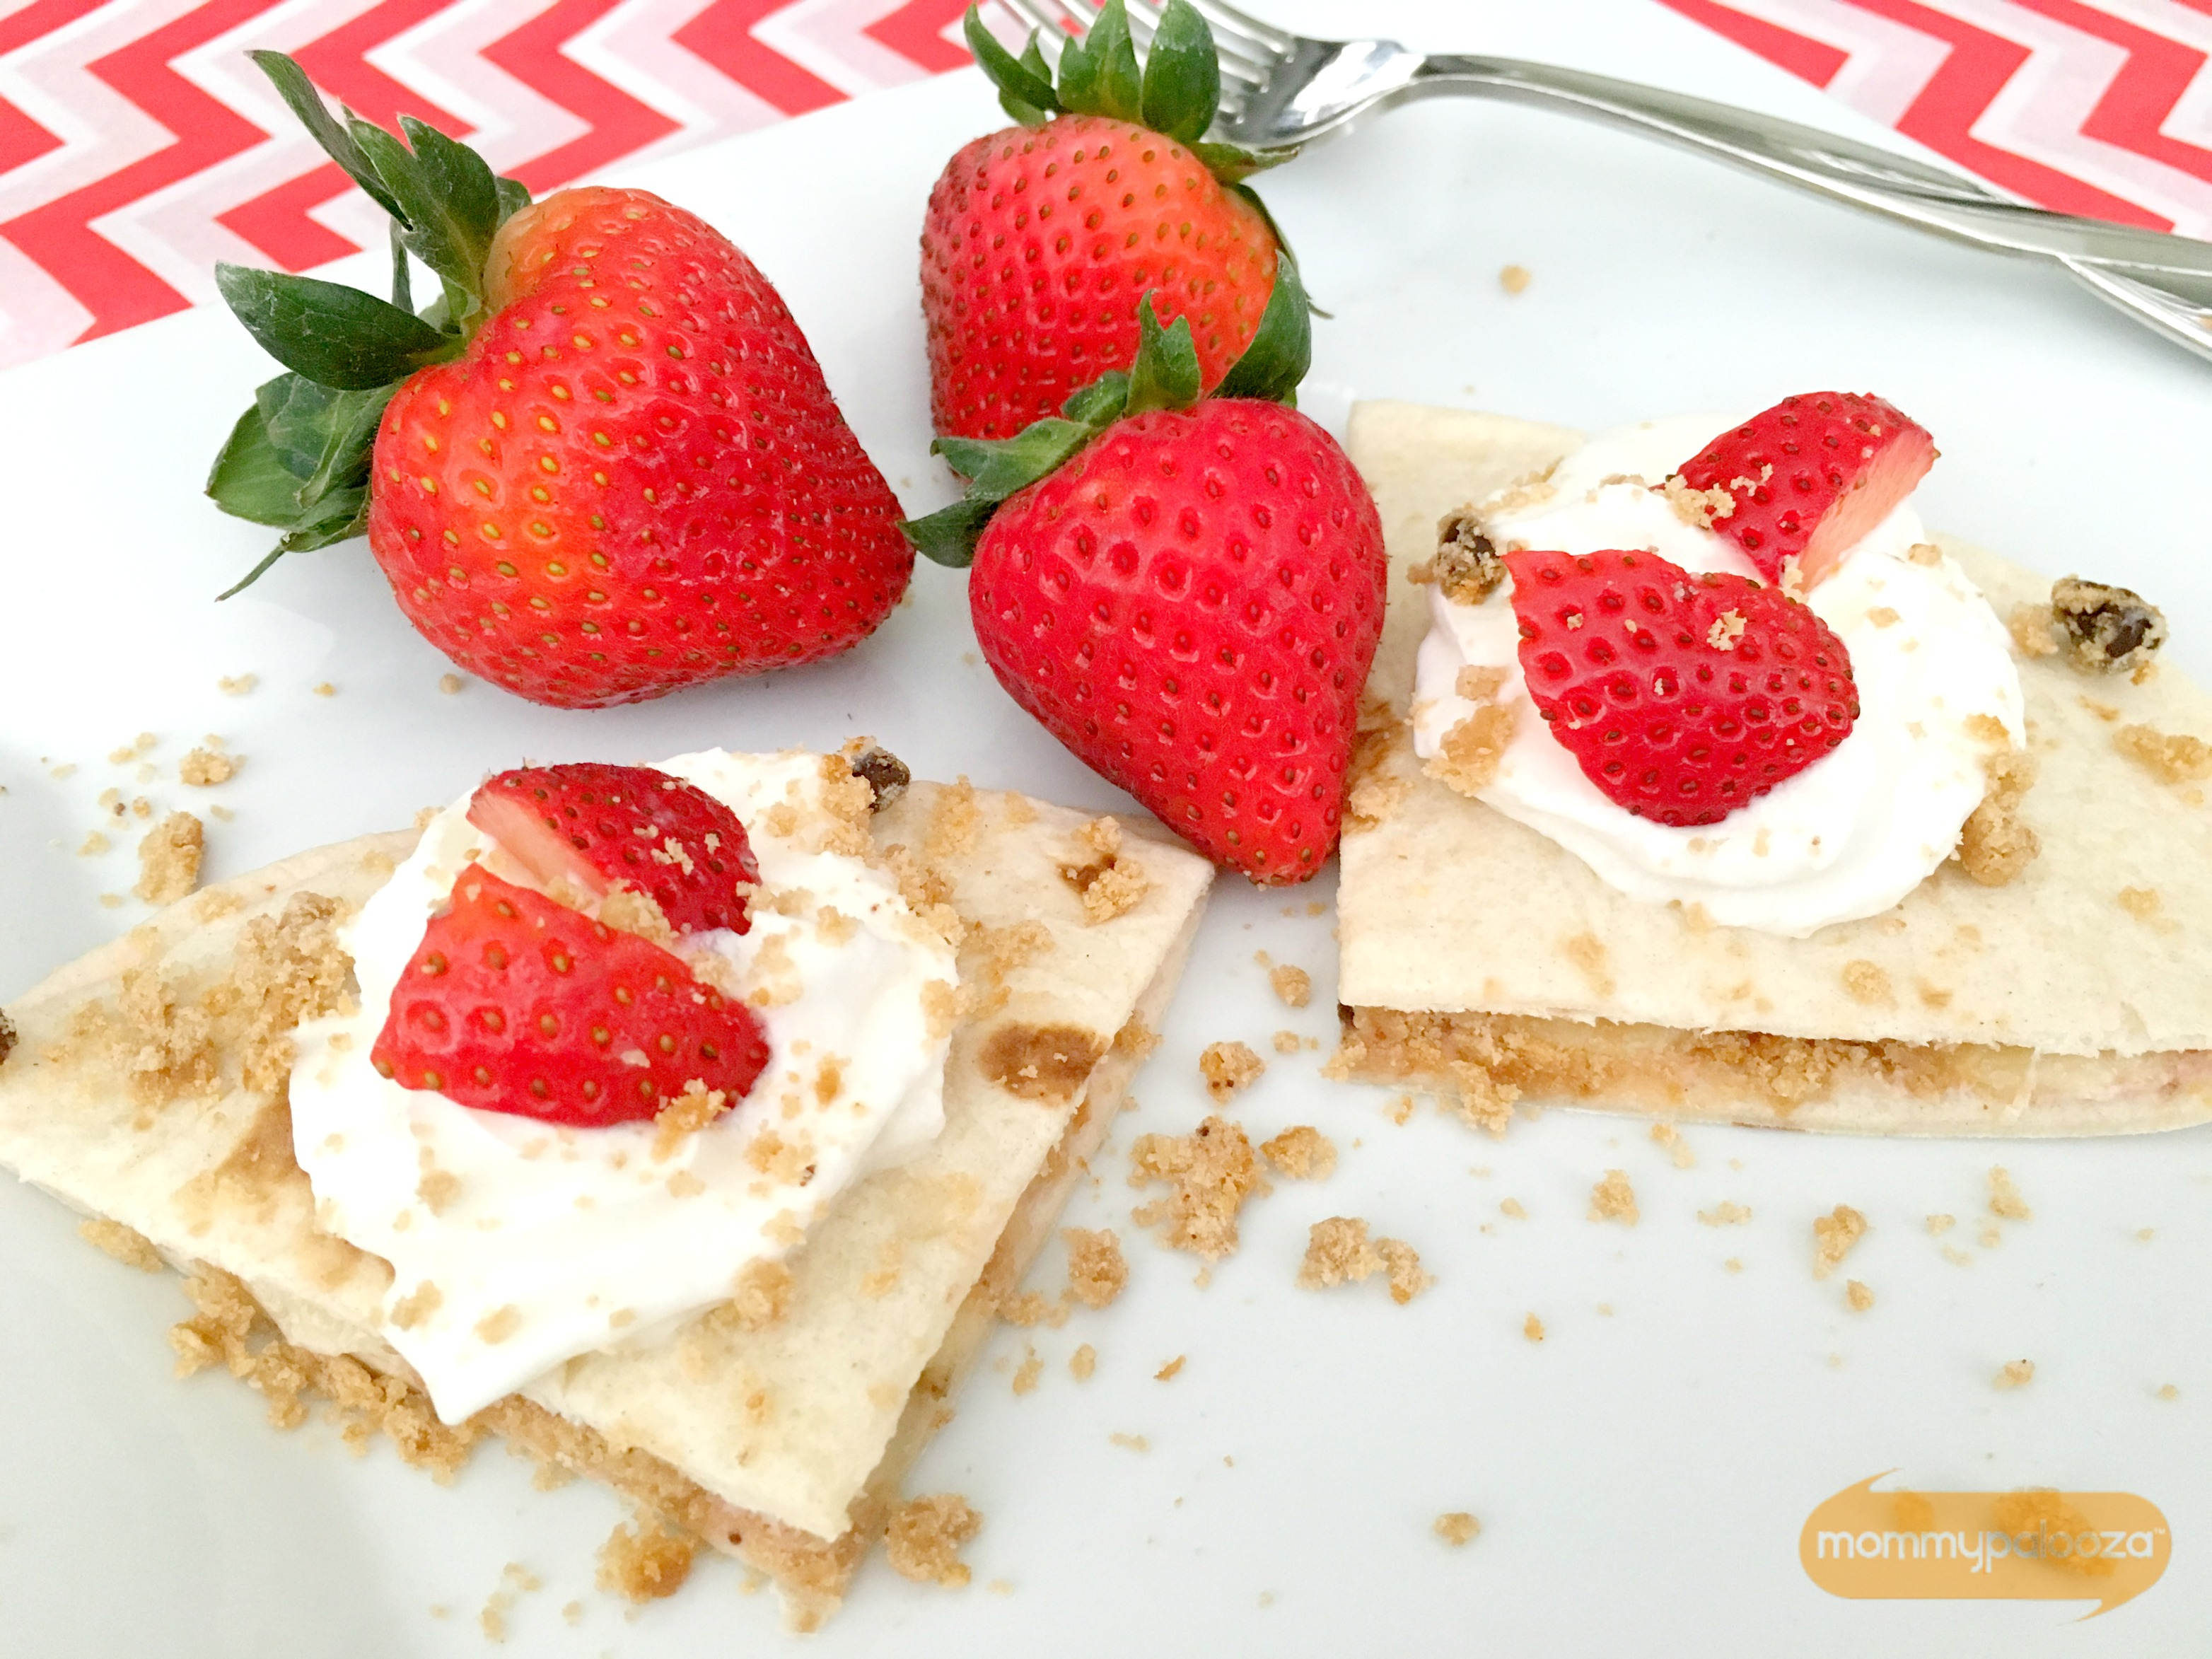 Chips Ahoy Banana and Strawberry Quesadillas Recipe